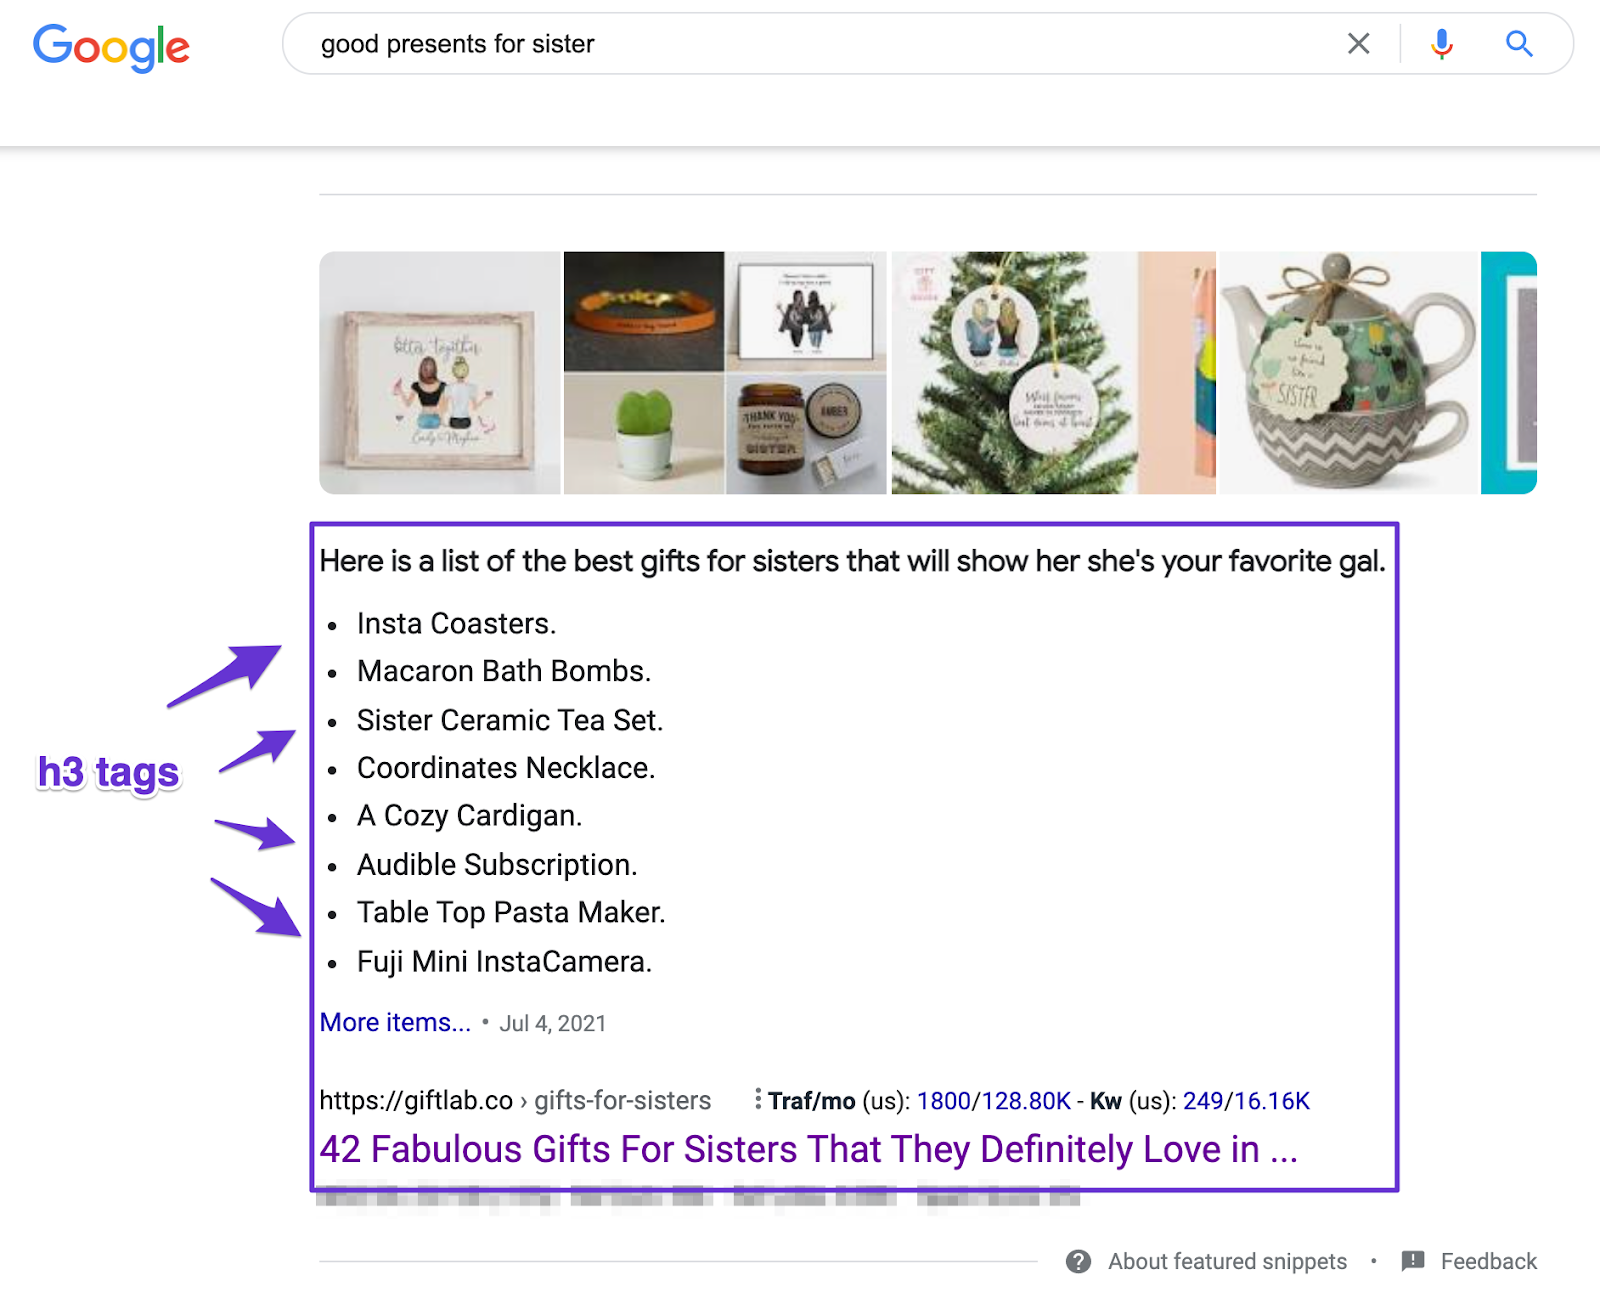 h3 tags displaying the featured snippet